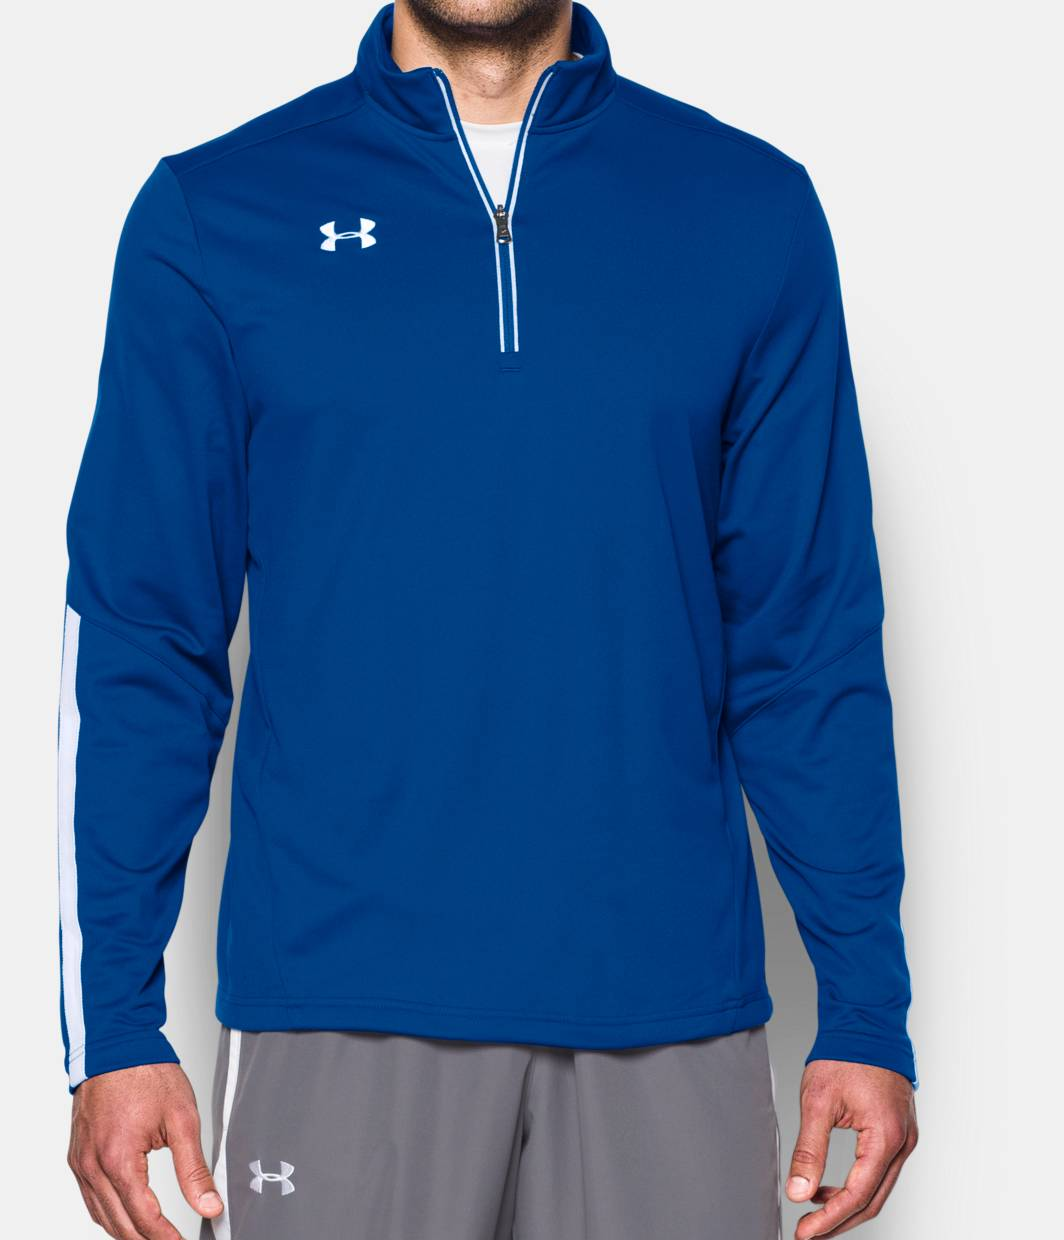 Men's AllSeasonGear Long Sleeve Shirts | Under Armour US